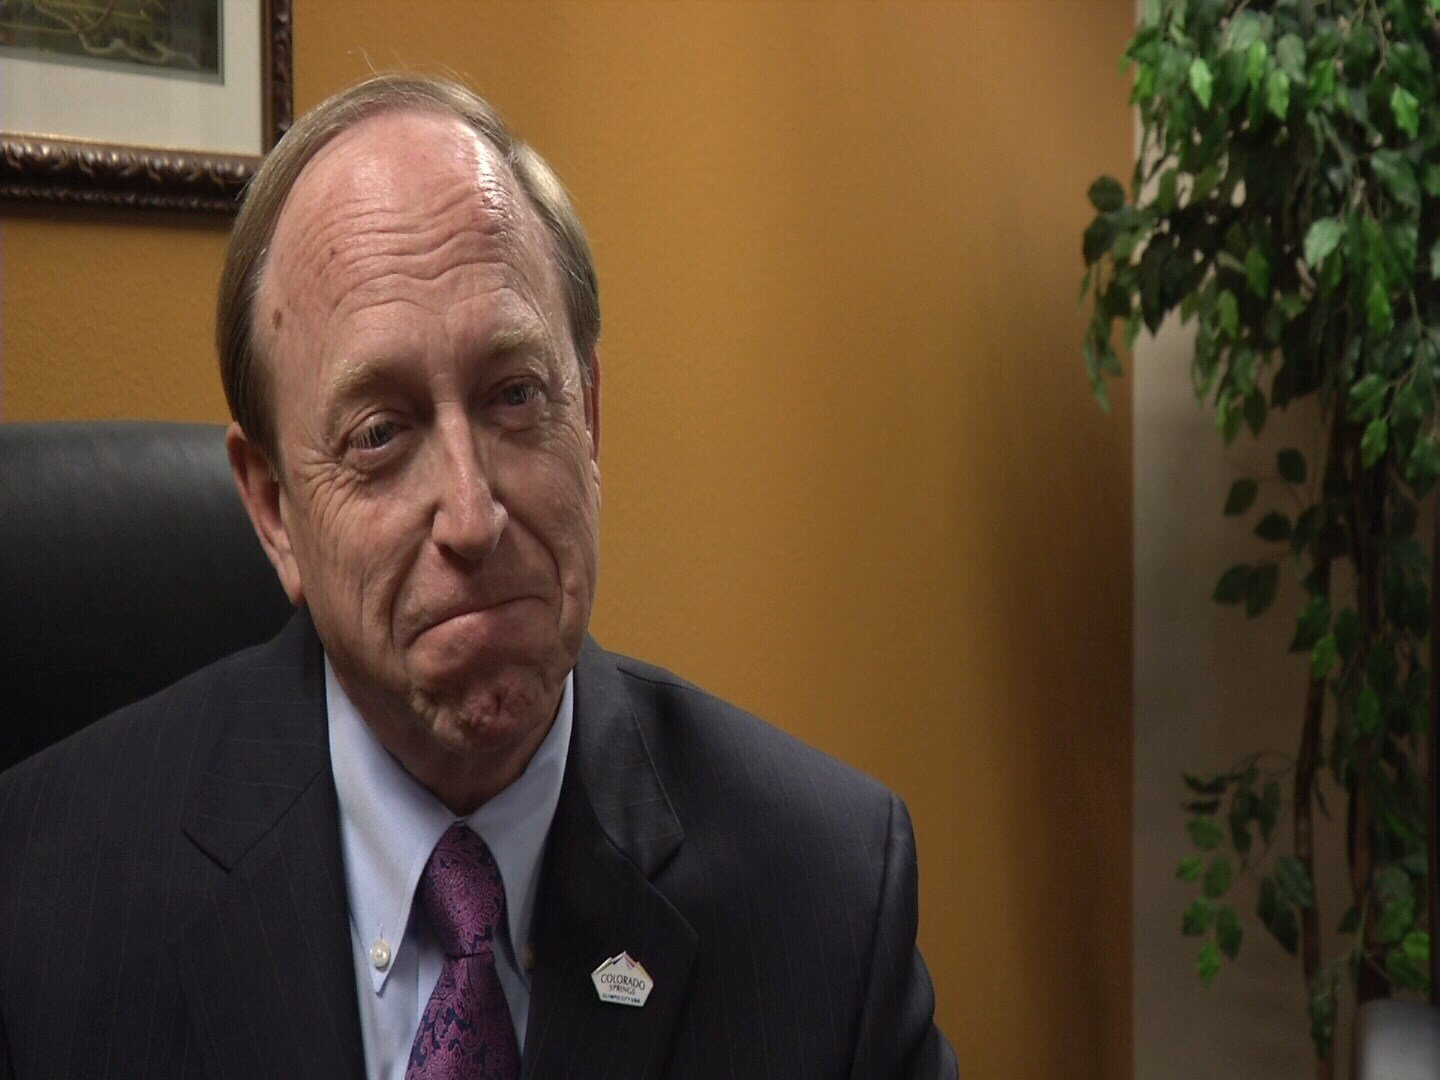 Colorado Springs Mayor John Suthers speaks out for the first time since being considered as the FBI Director replacement. (KOAA)